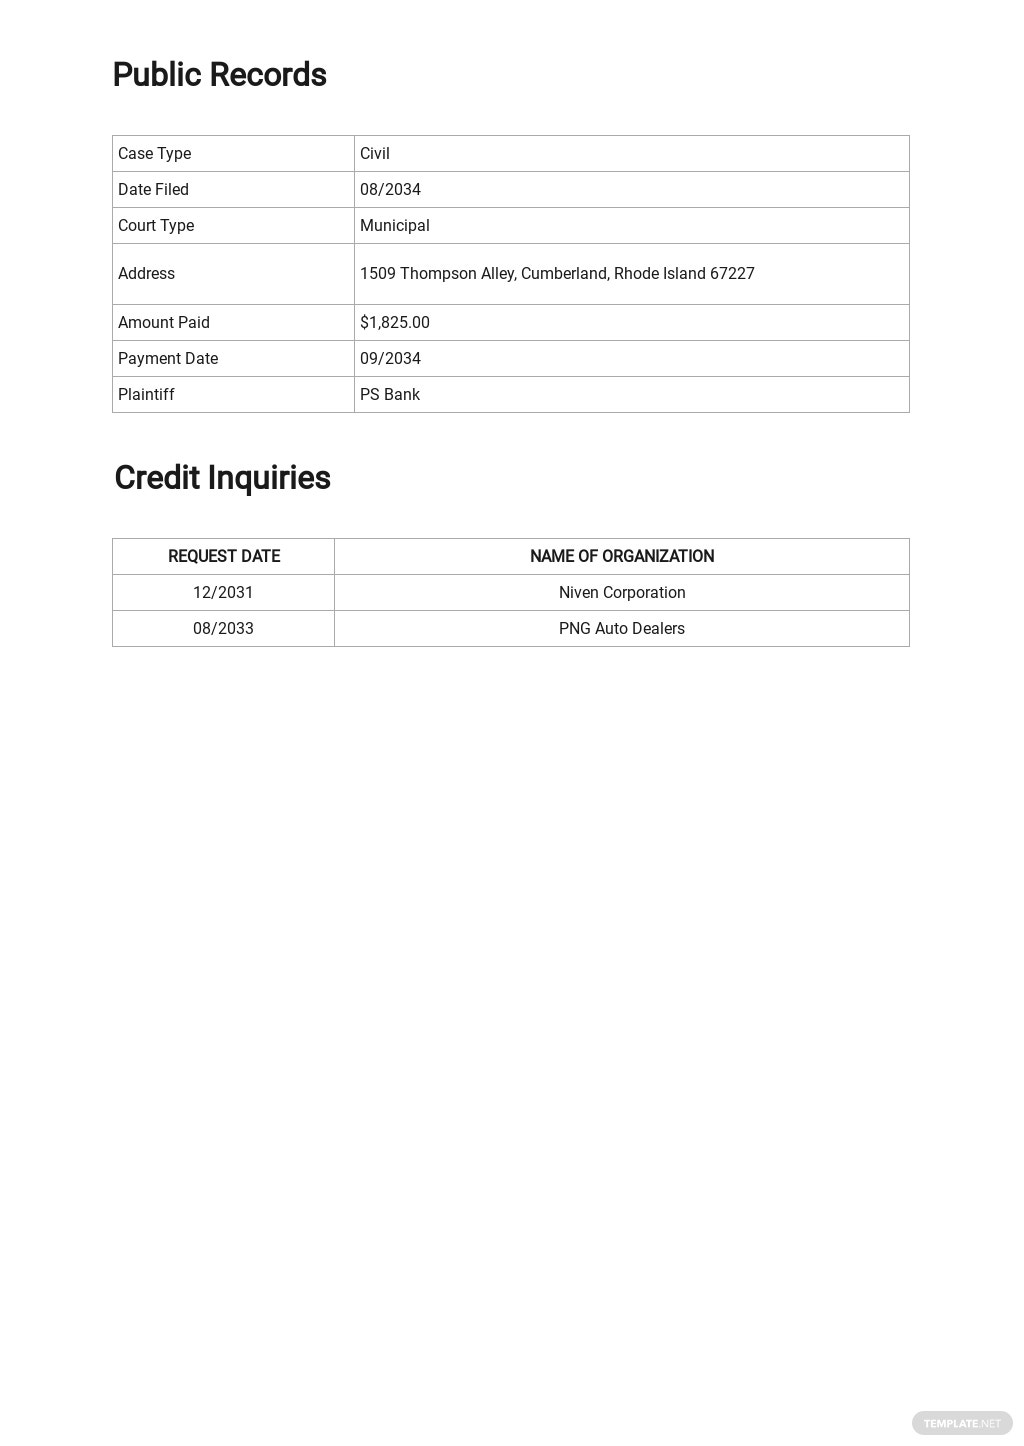 Credit Report Authorization Form Template  3.jpe